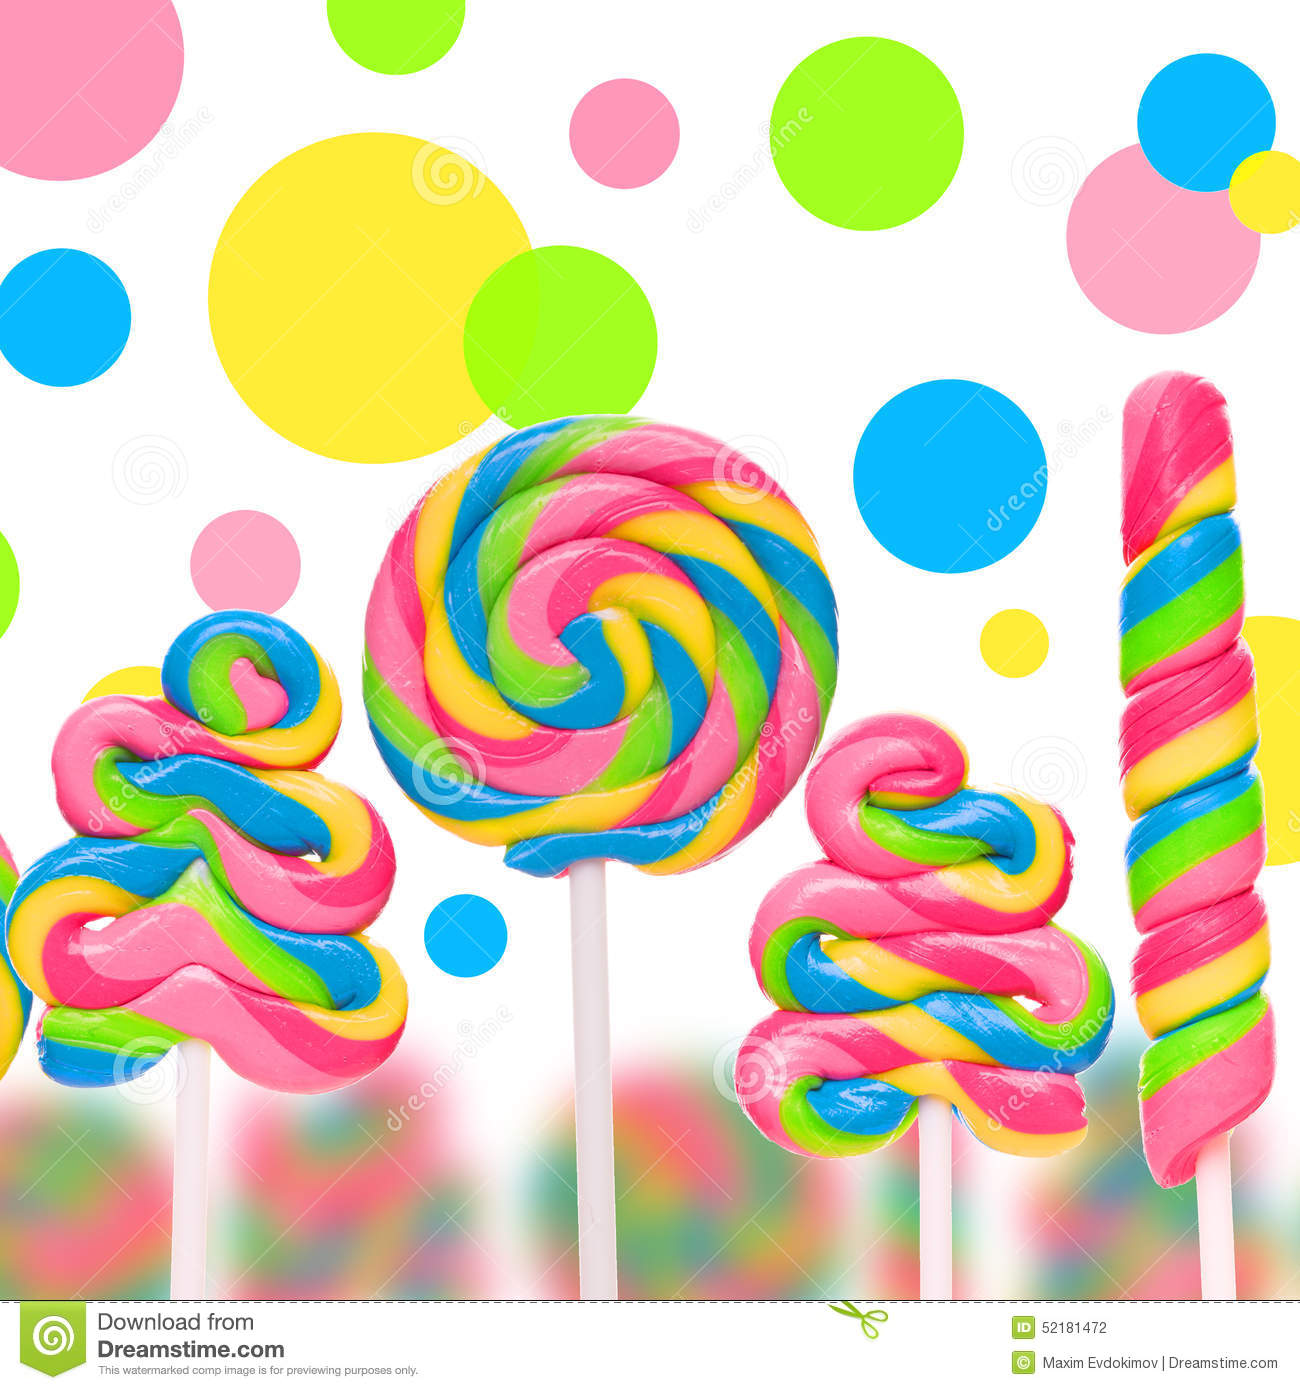 Sweet Cute Couple Hd Wallpaper Lollys Clipart Clipground